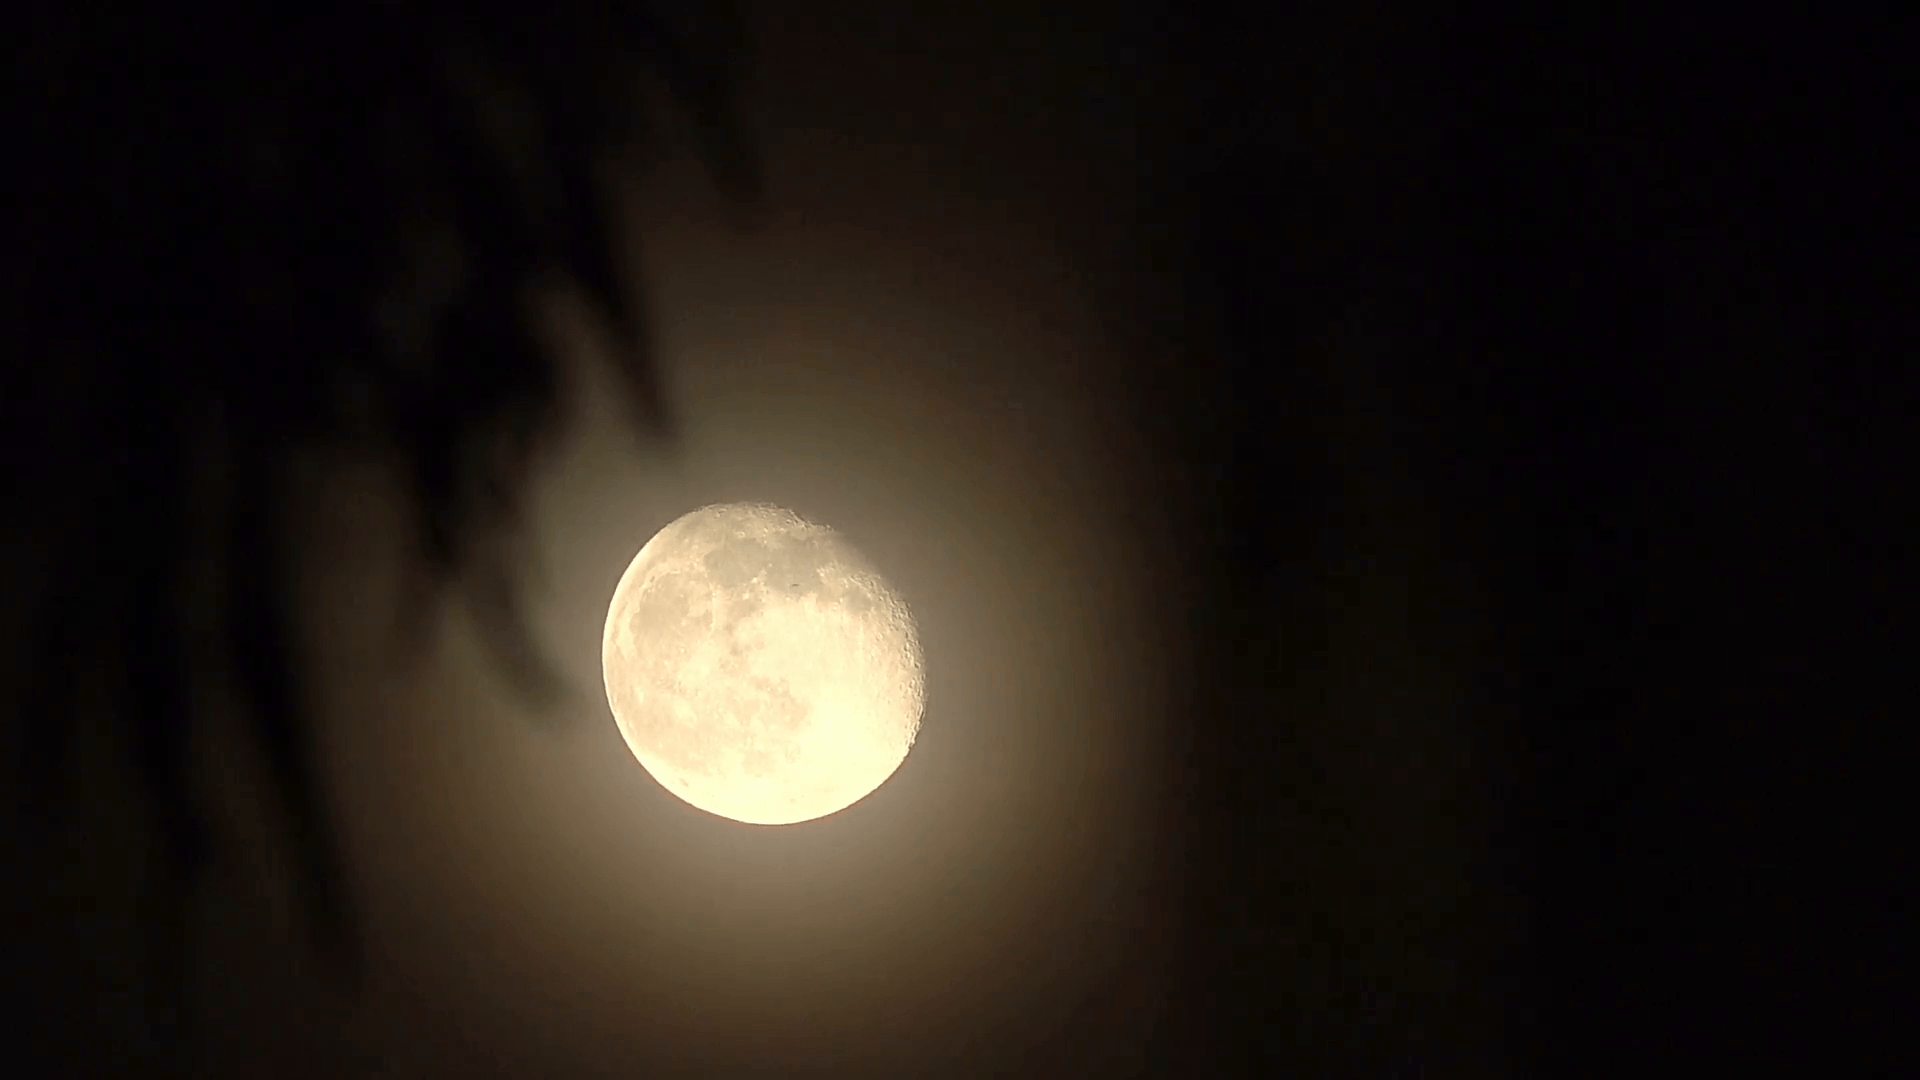 HD tight waning gibbous moon super detail v2 Stock Video Footage ...